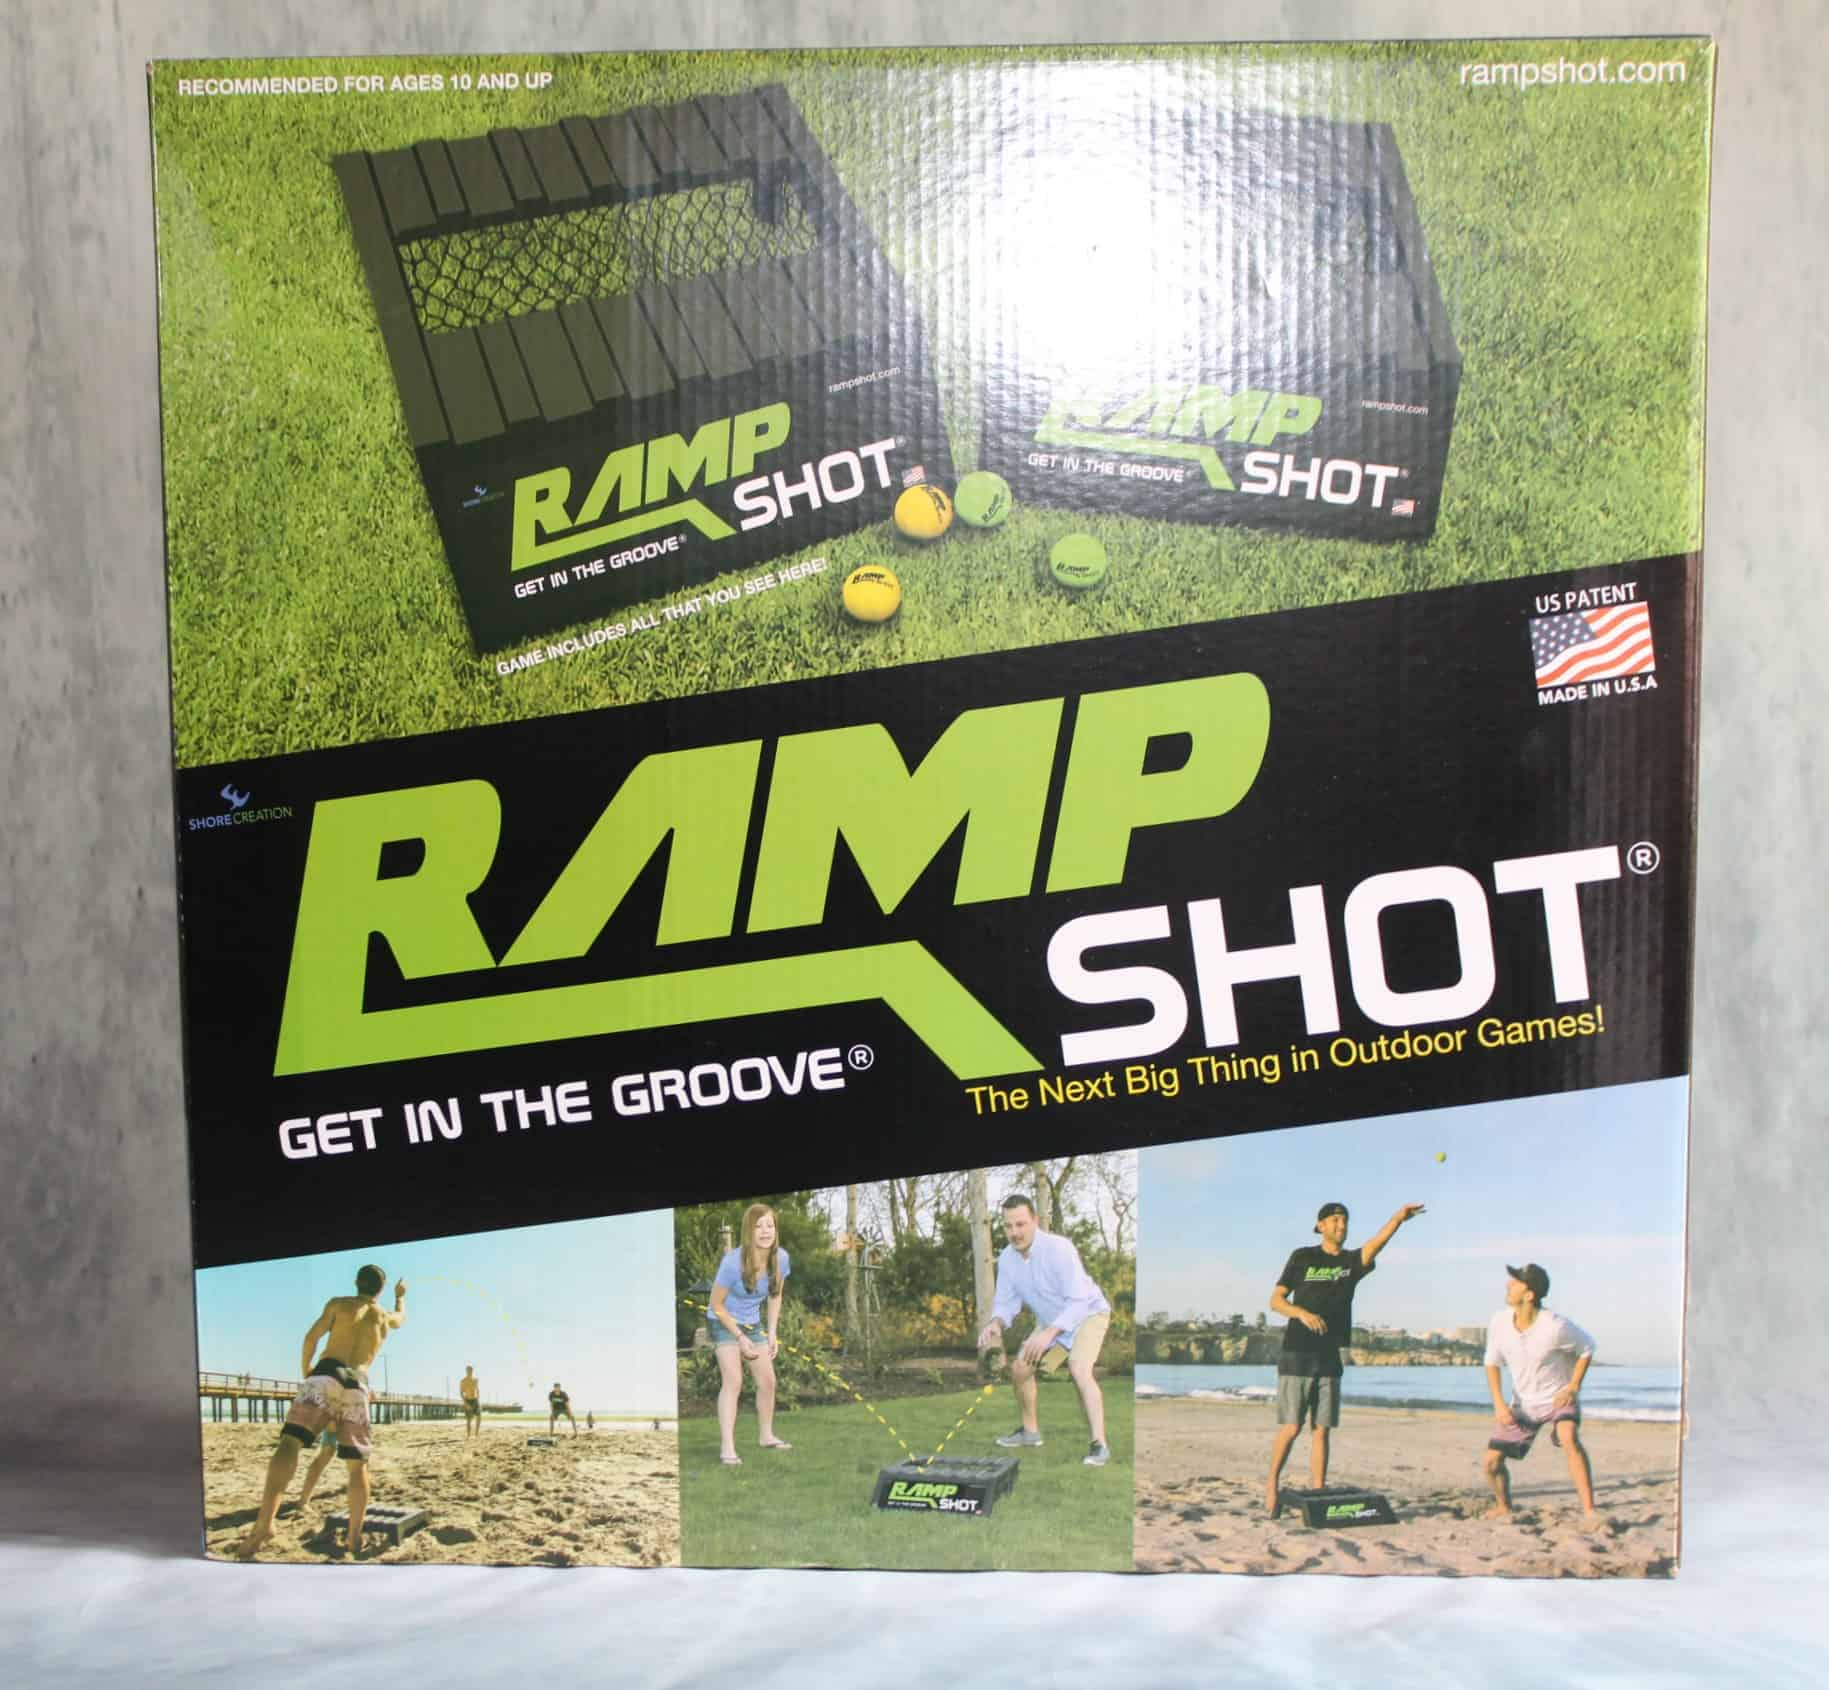 Get outside with your kids this summer with the coolest new, action-packed group game RampShot! It's described as 'corn hole on steroids' and incorporates two ramp boards and a bouncing ball. This isn't any ordinary board though, the ramp has grooves and ridges to make the ball bounce in various directions. The game is played two on two and requires jumping, running and catching. RampShot encourages motor skills, teamwork, and physical coordination.  Get your own Rampshot today!